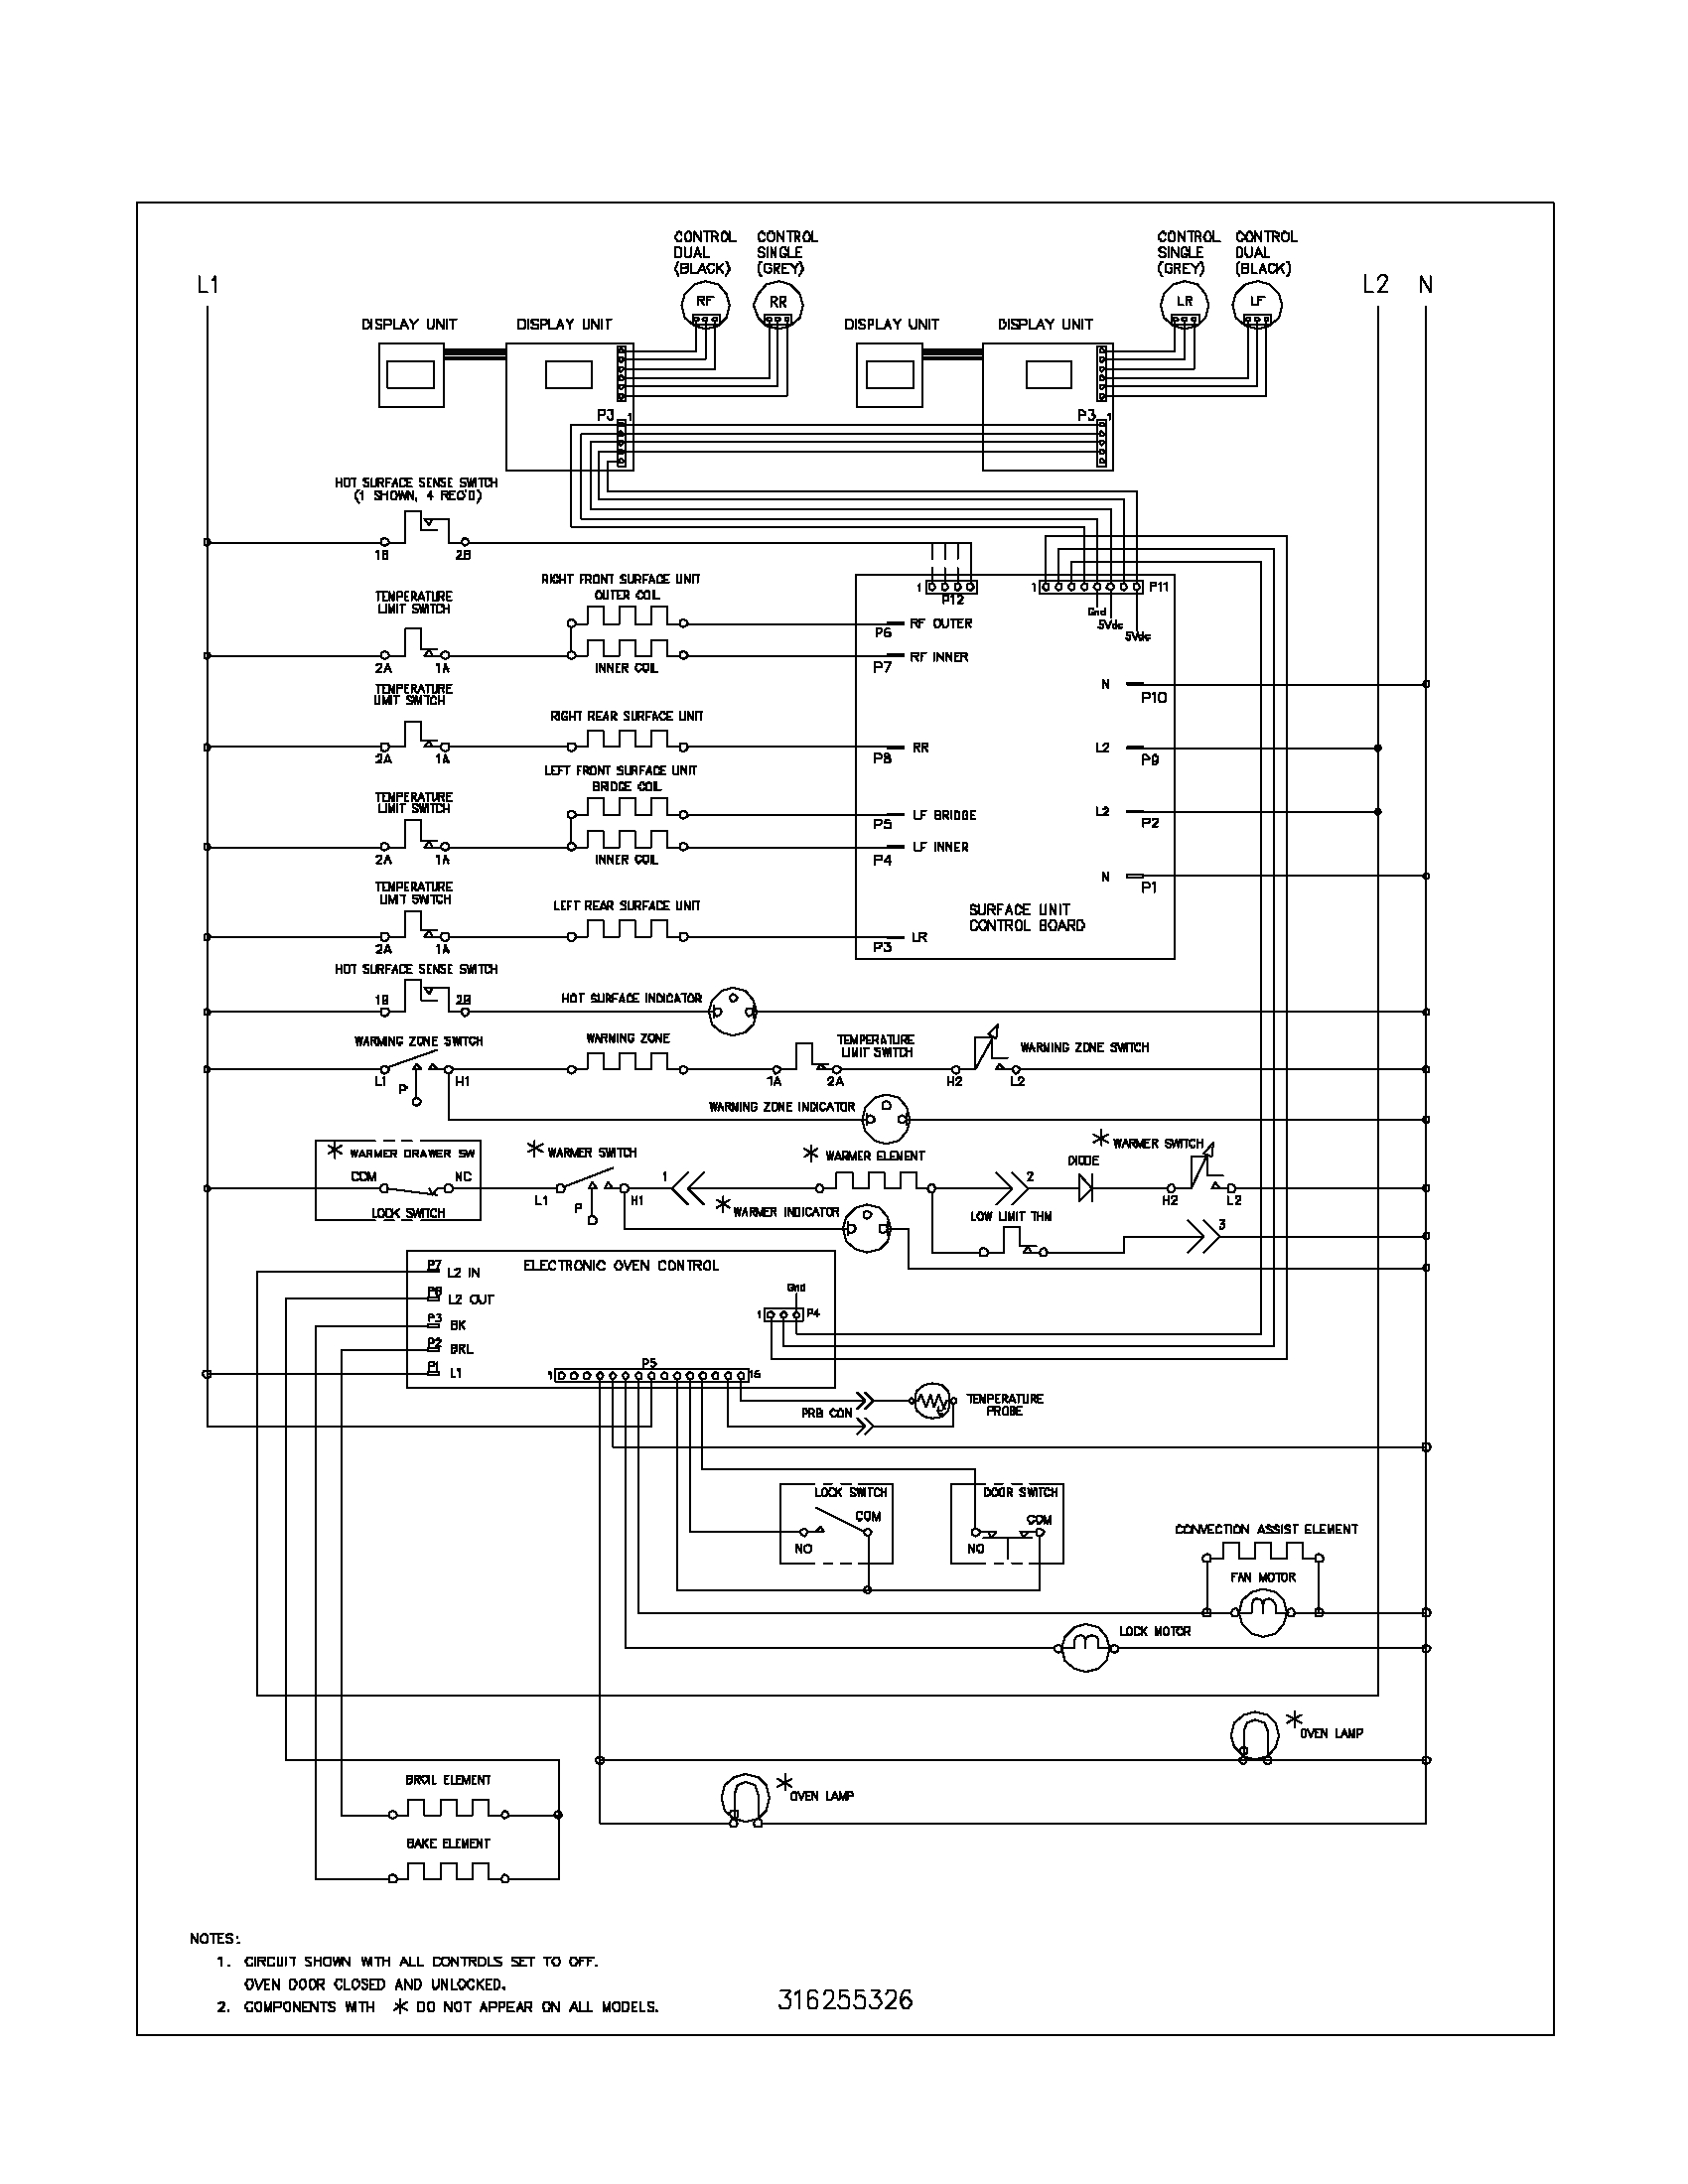 Thermat Evcon Wiring Diagrams